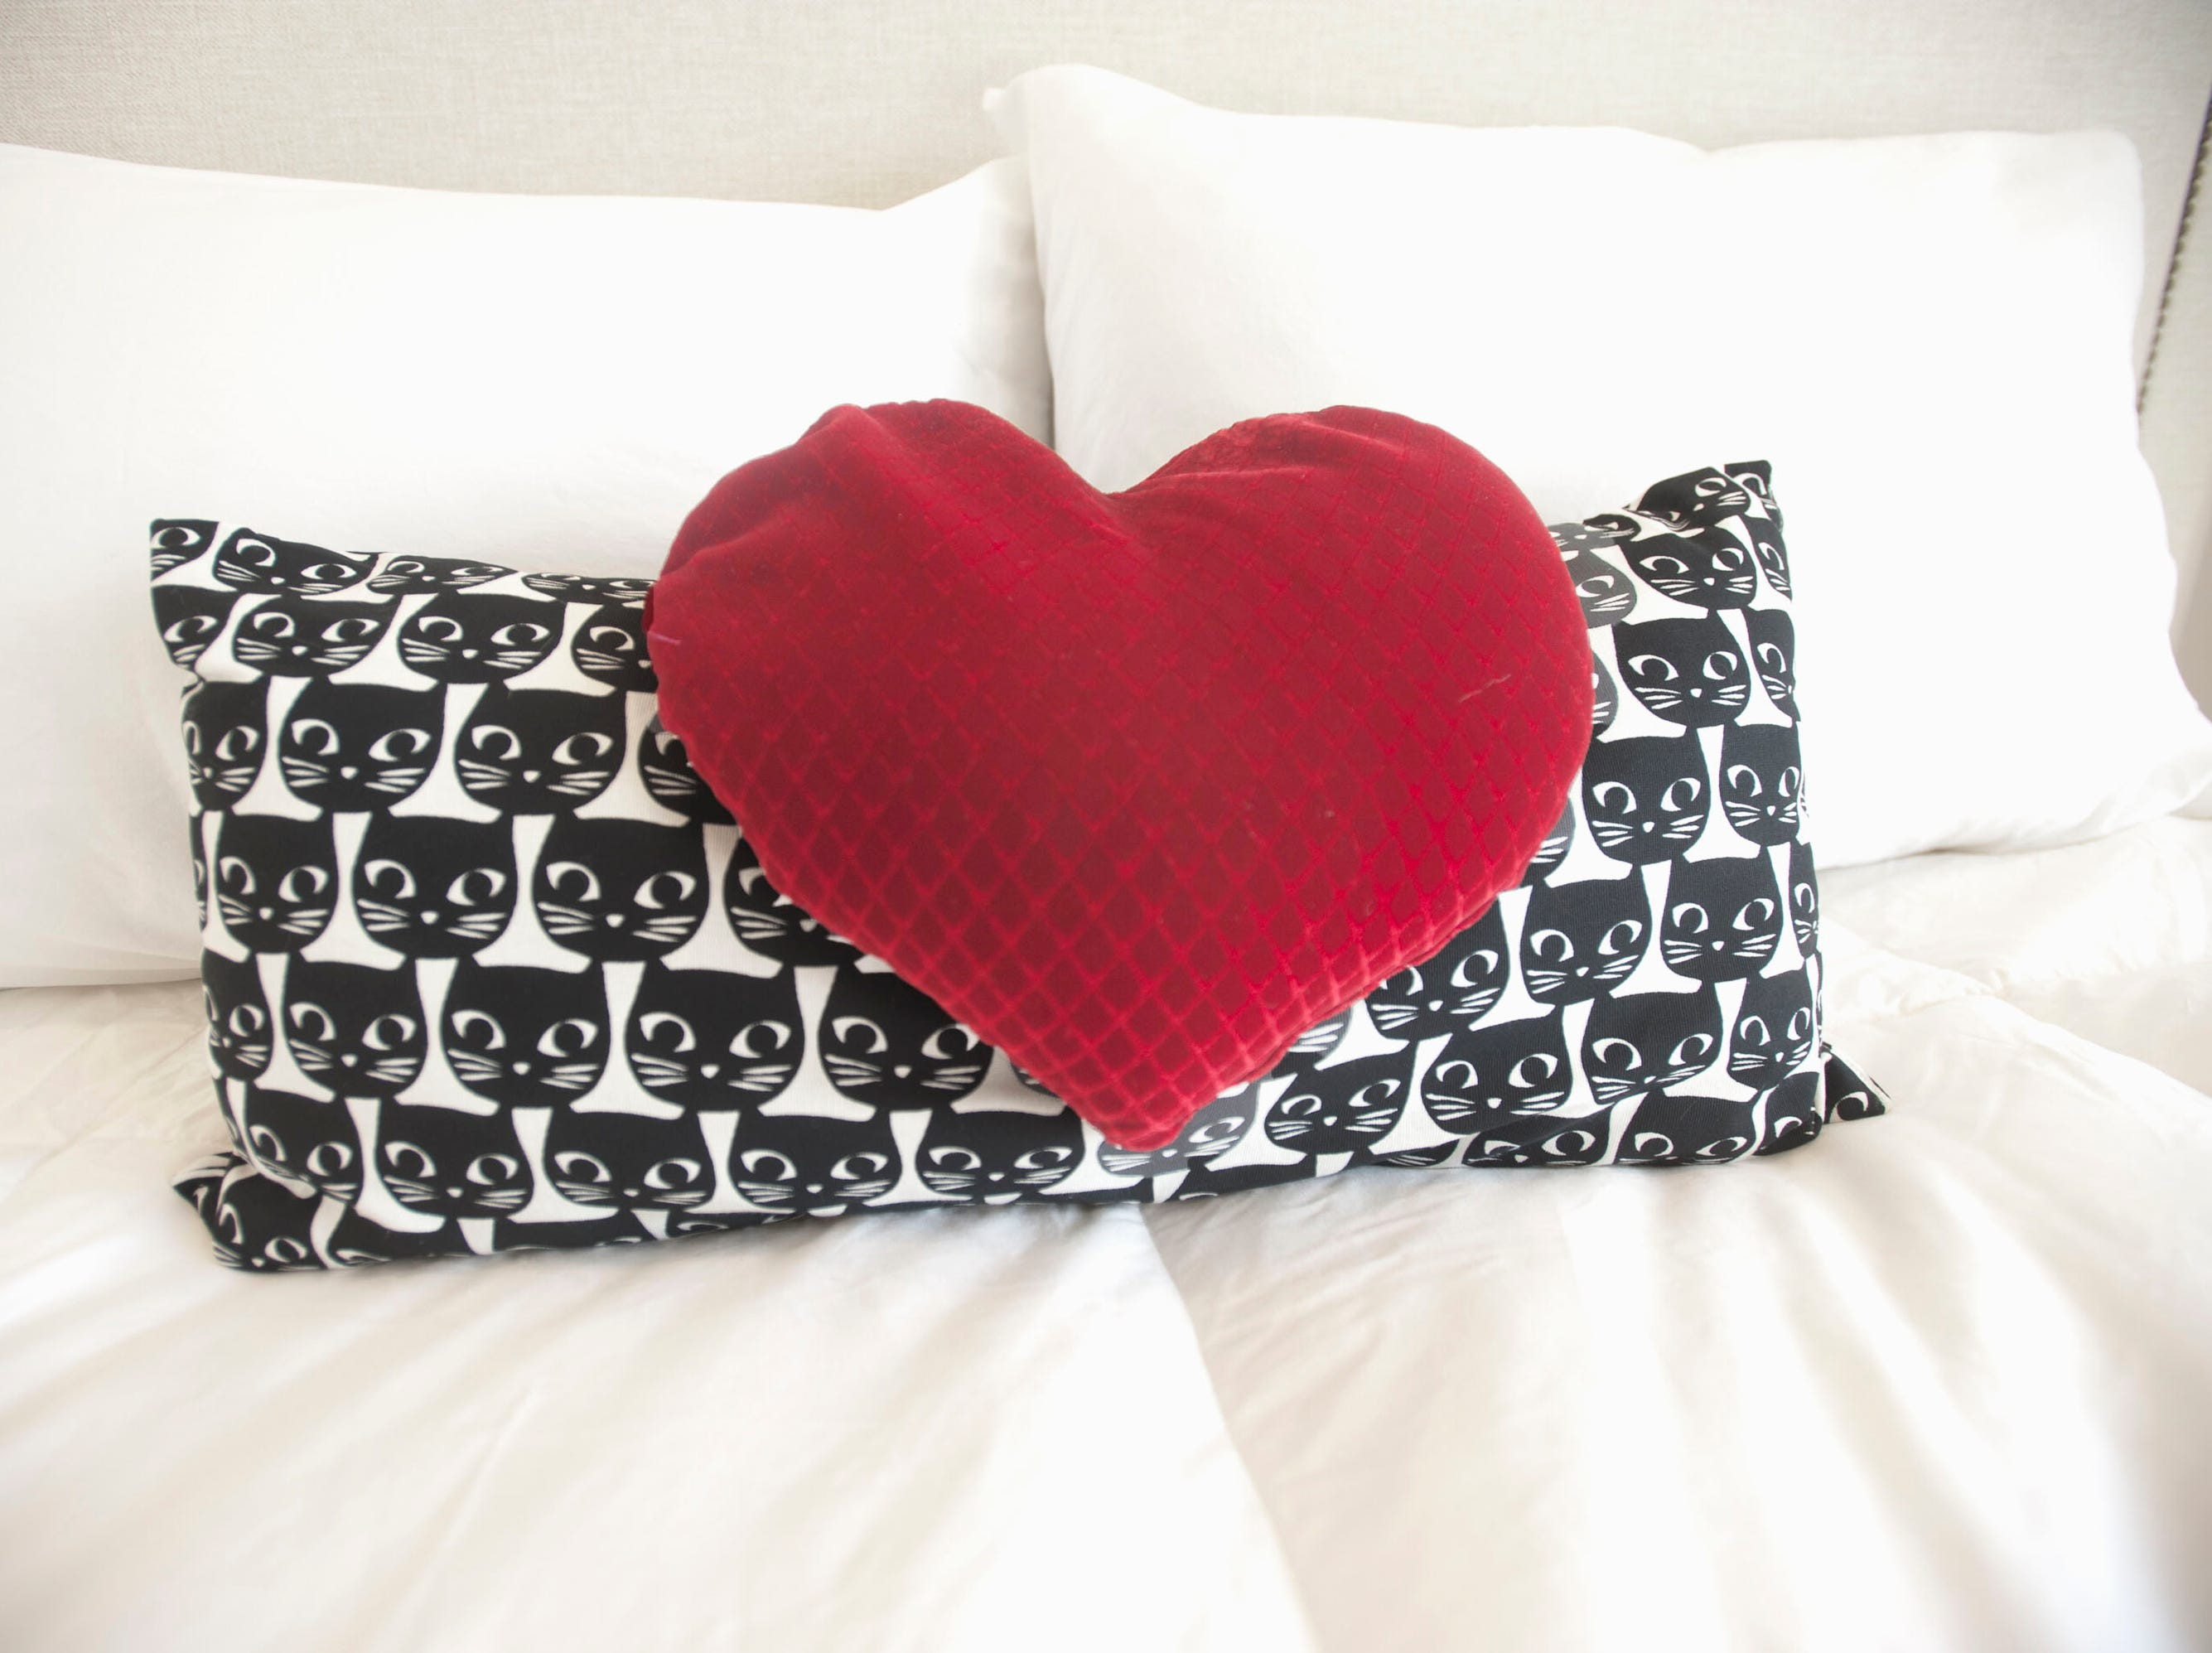 A cat pillow and a heart pillow sits atop the guest bed in the condominium of Denise Puthuff.